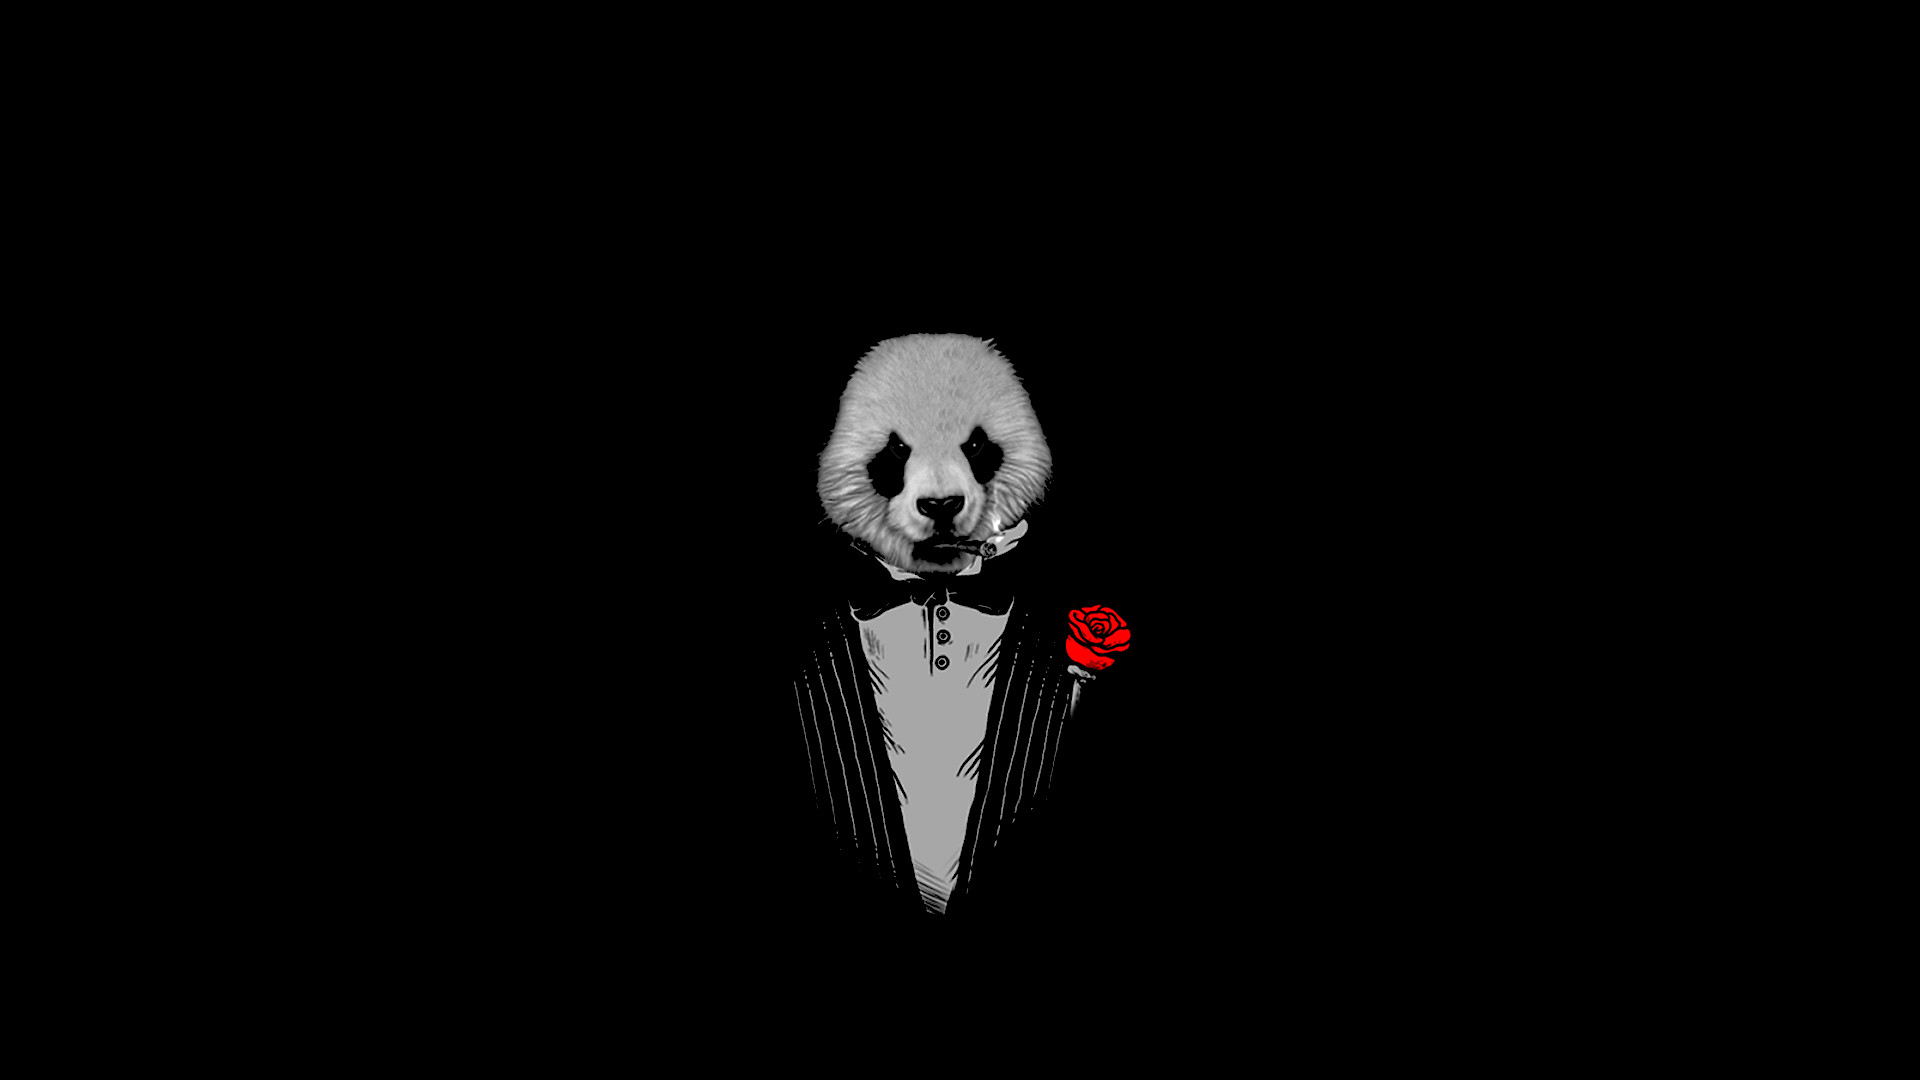 Res: 1920x1080, panda, The Godfather, Black Wallpapers HD / Desktop and Mobile Backgrounds